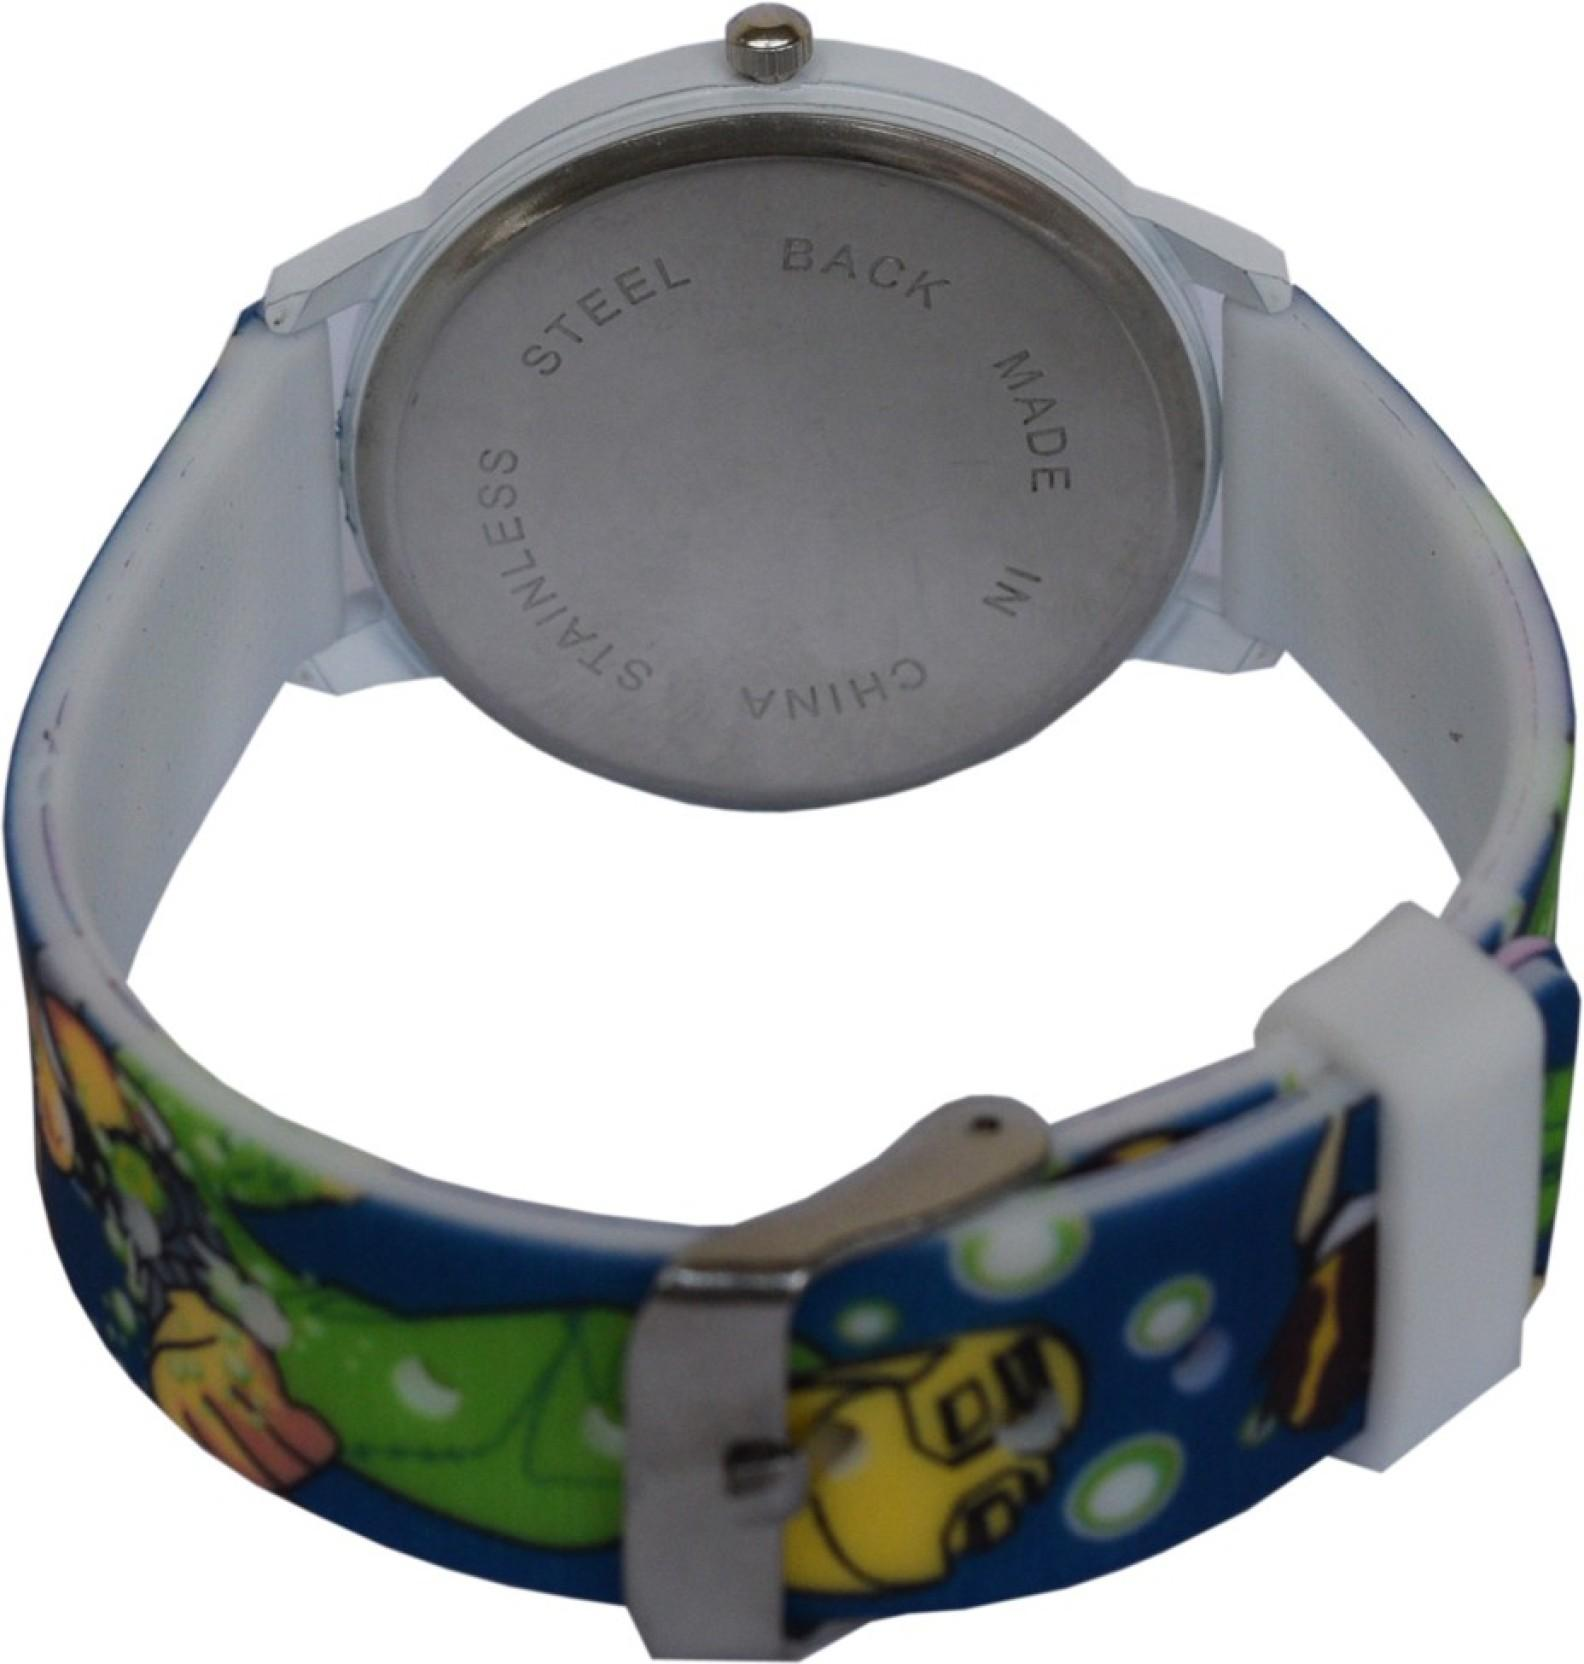 CREATOR Ben-10 New Round Dial 002- (sent as per available colour ) Fashion Watch - For Boys & Girls